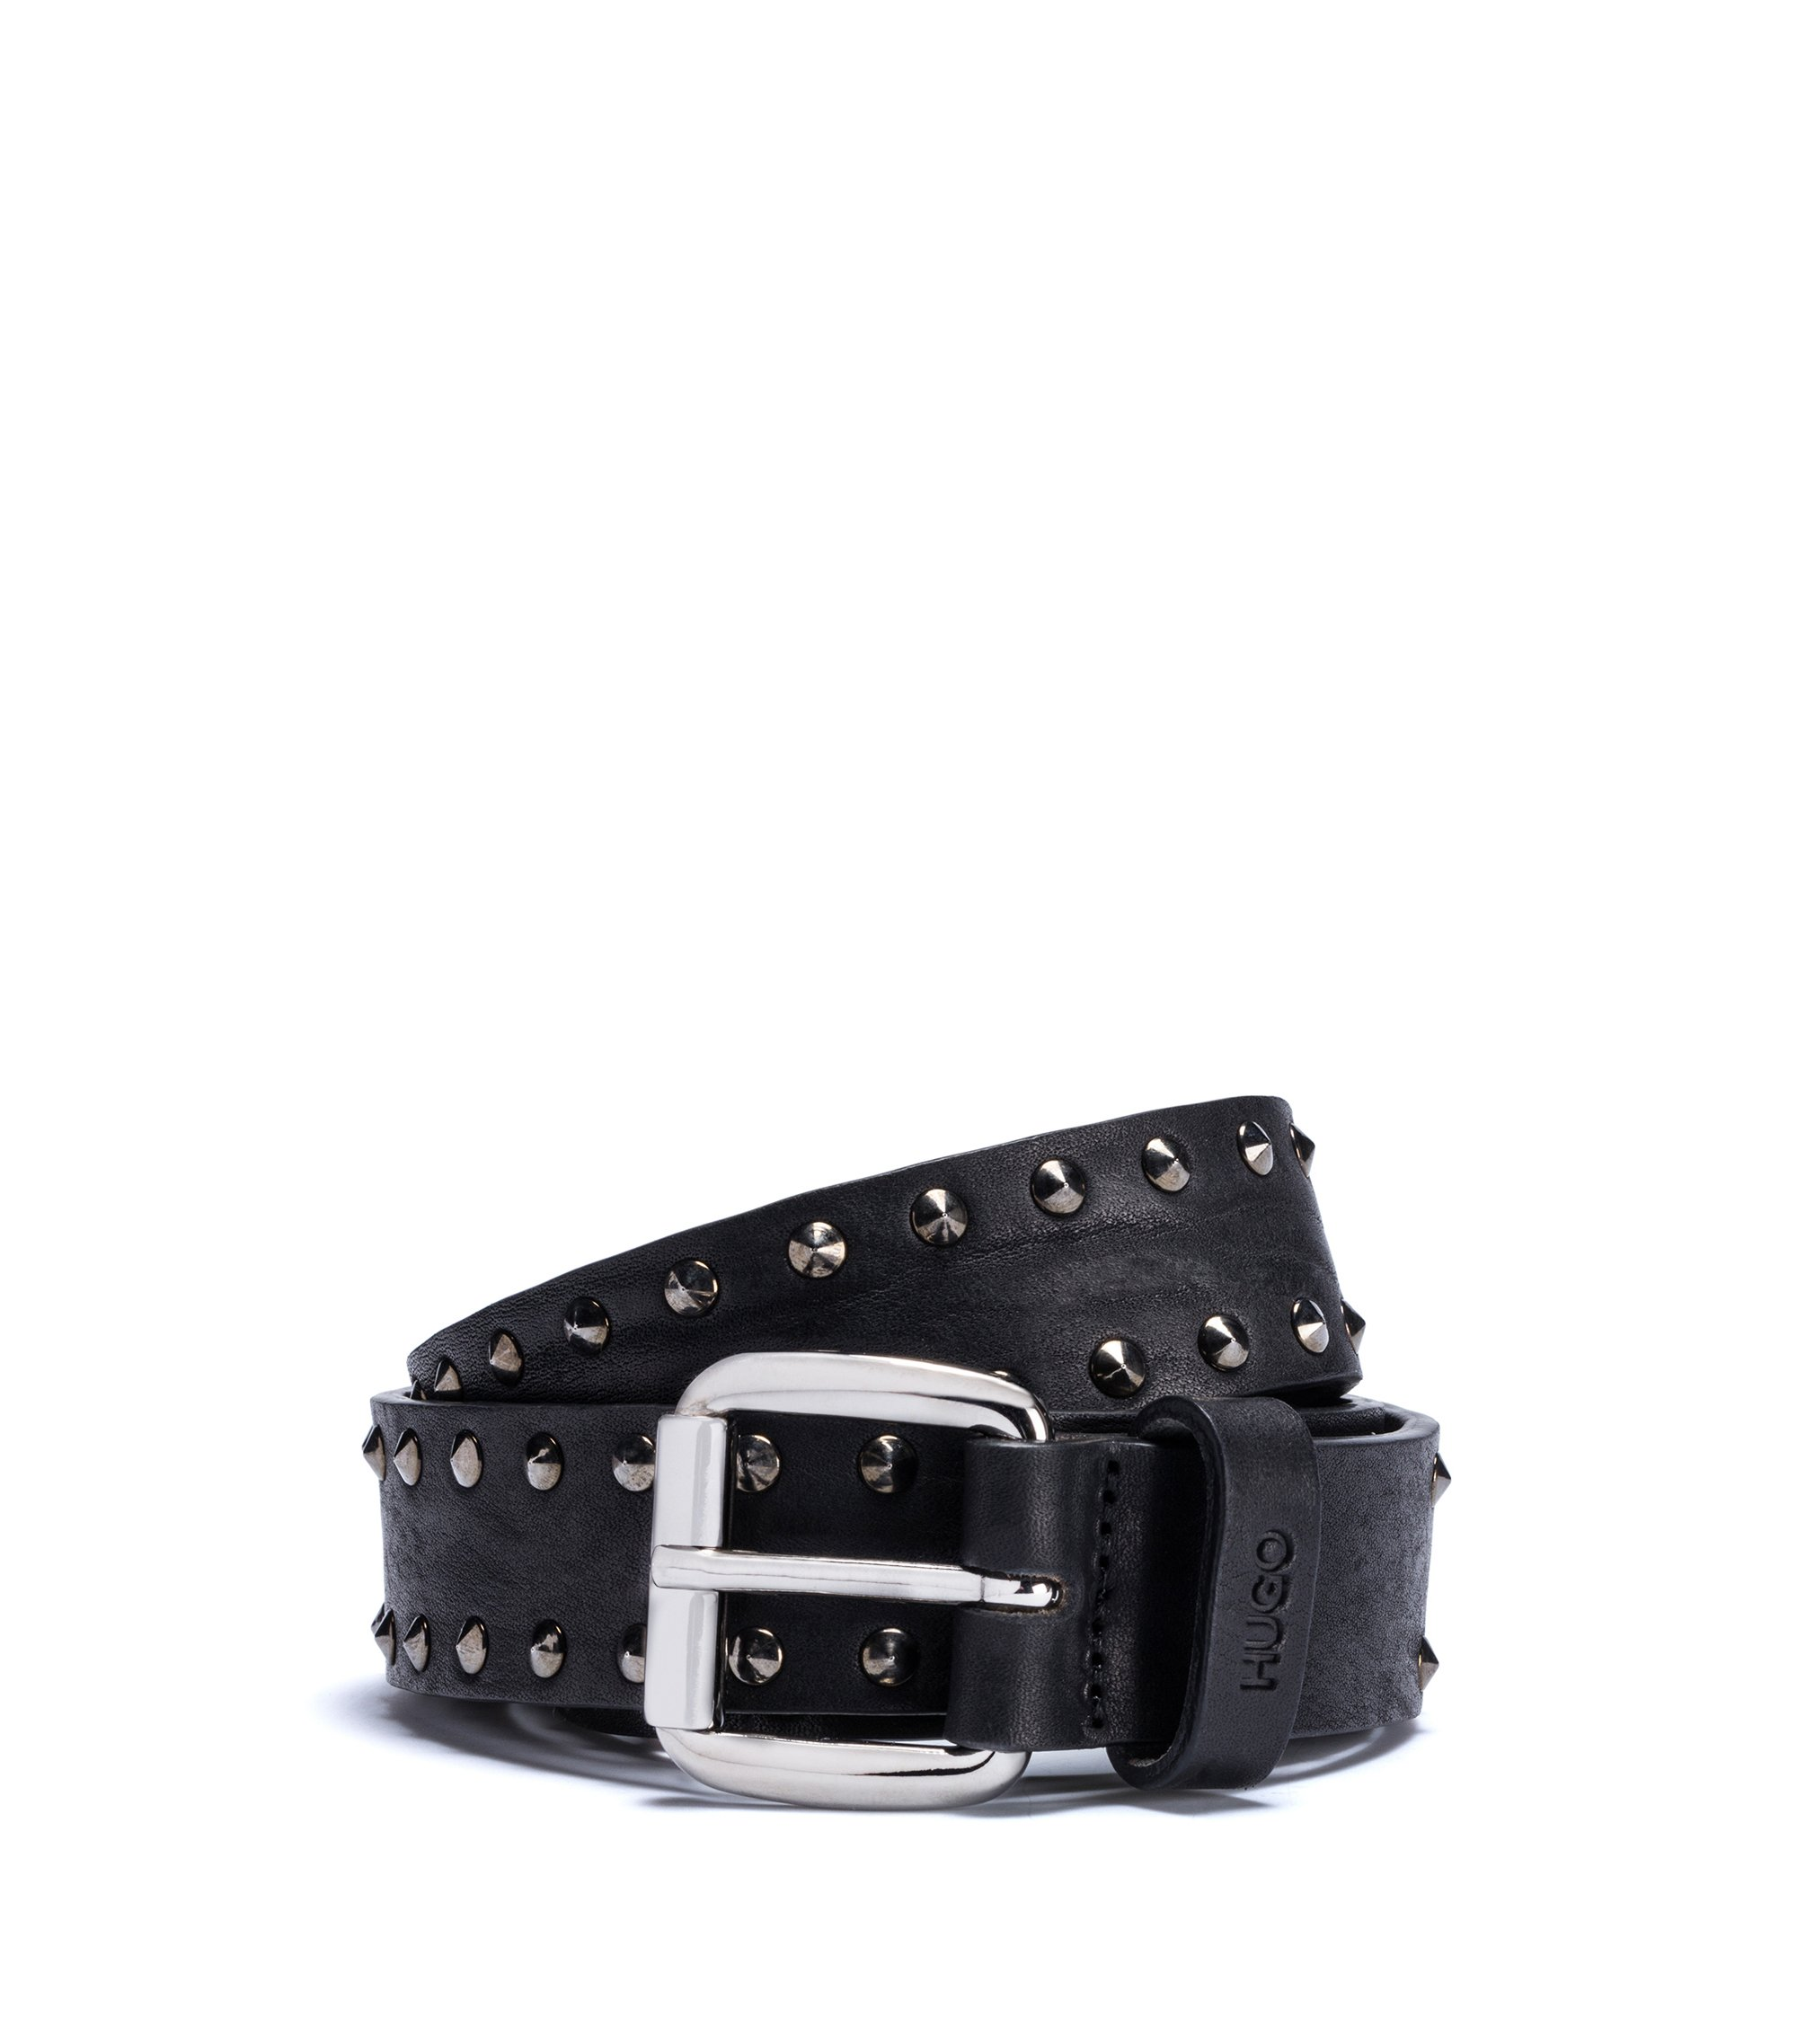 Tumbled-leather belt with stud detailing, Black